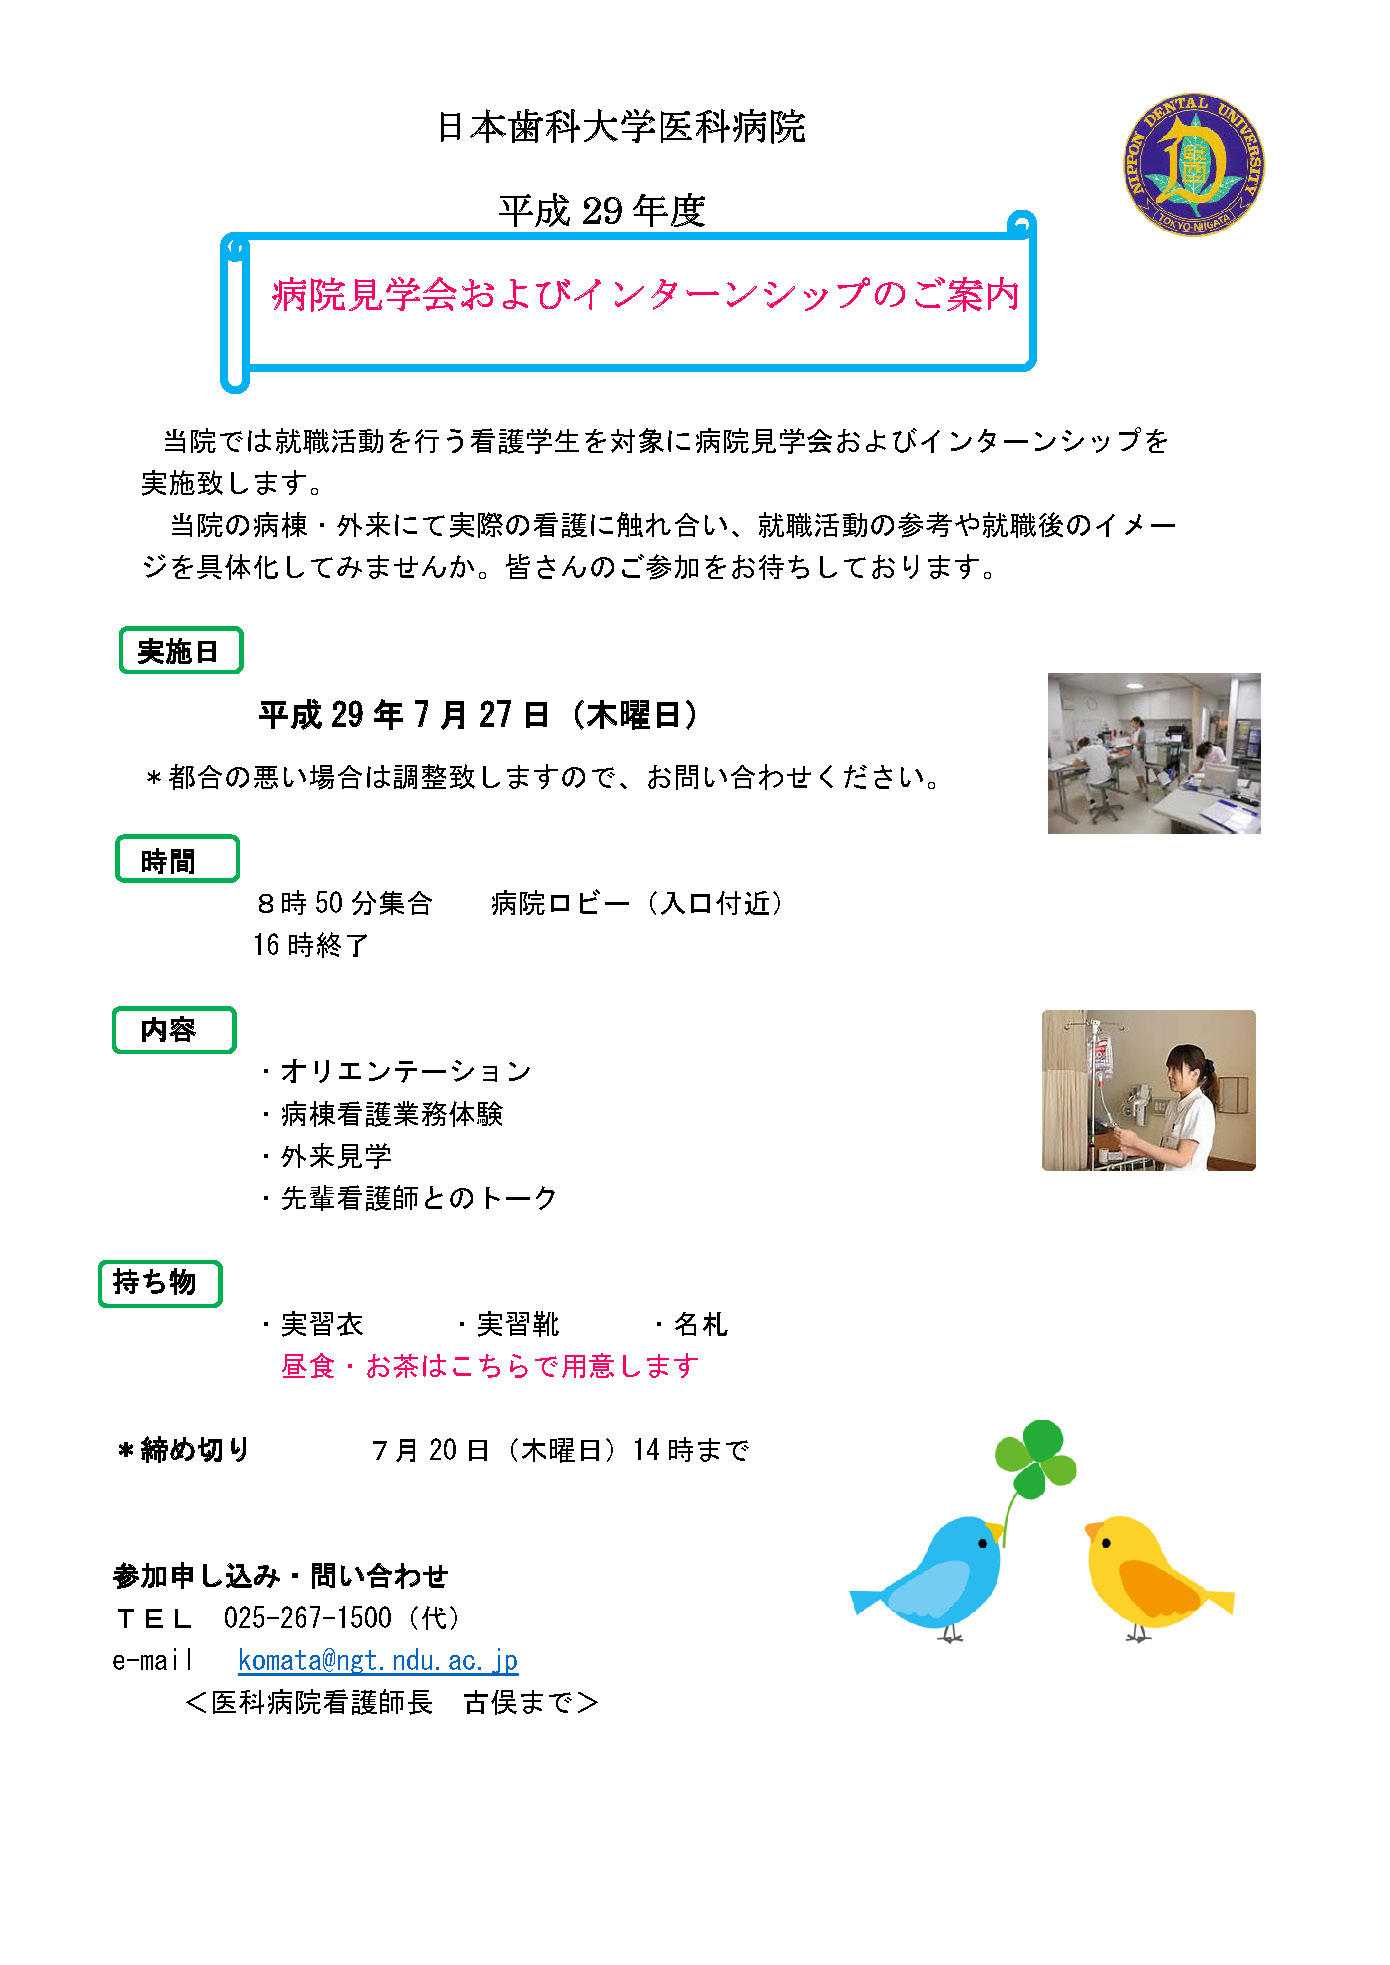 http://www.ngt.ndu.ac.jp/hospital/medical/info/internship2017.jpg